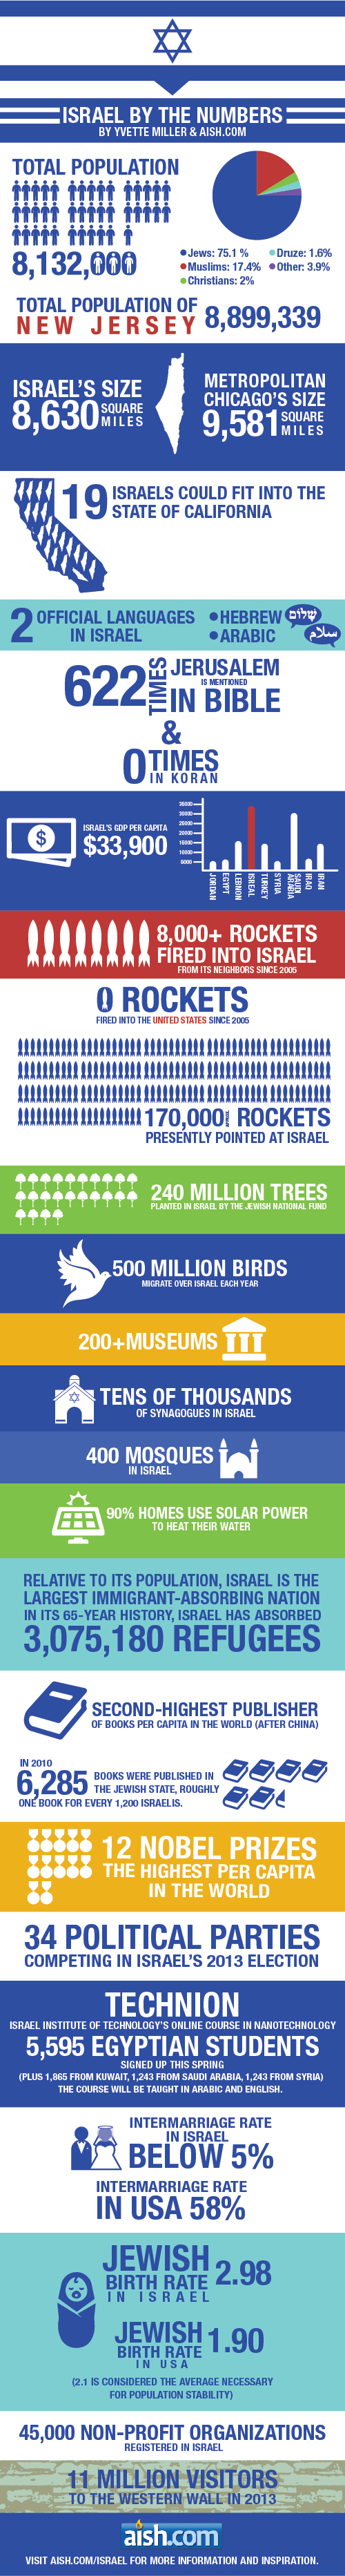 Israel by the Numbers